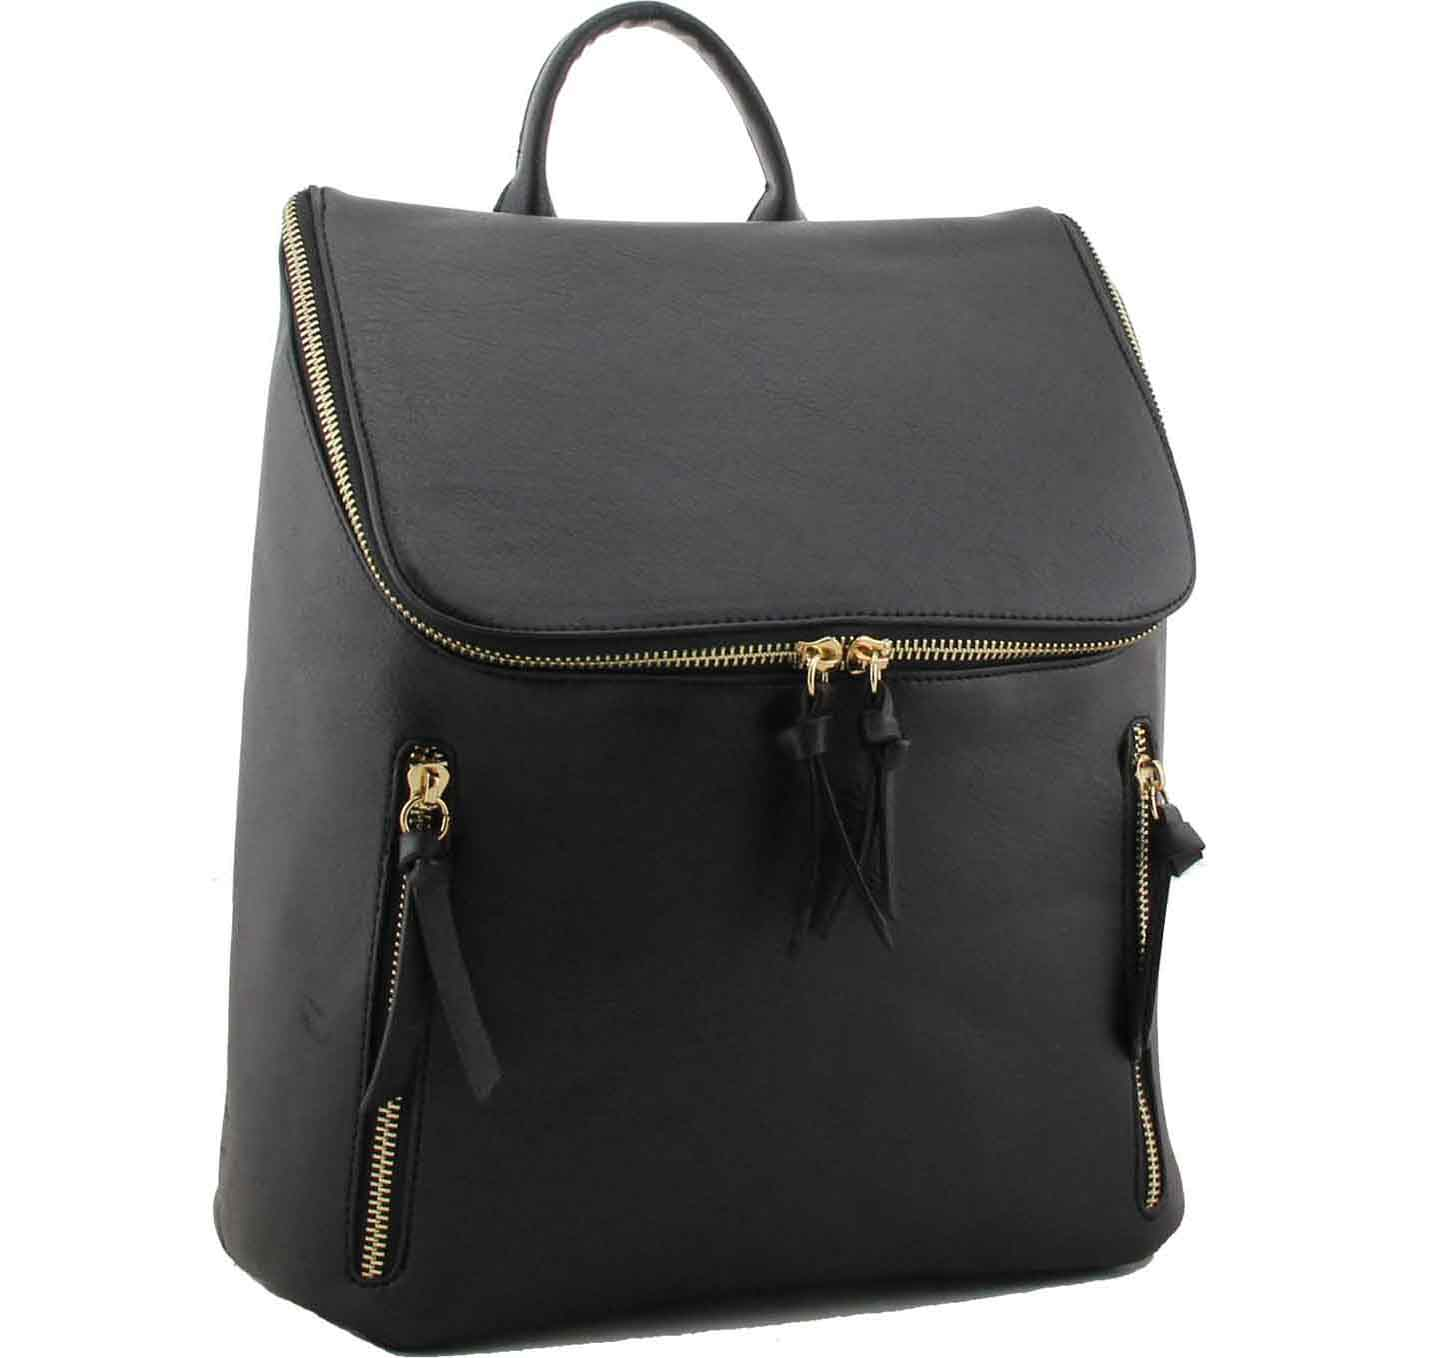 ca9c70ebcca0 H1652 - Tammy fashion designer backpack black ~ BAGZONE - Suppliers ...